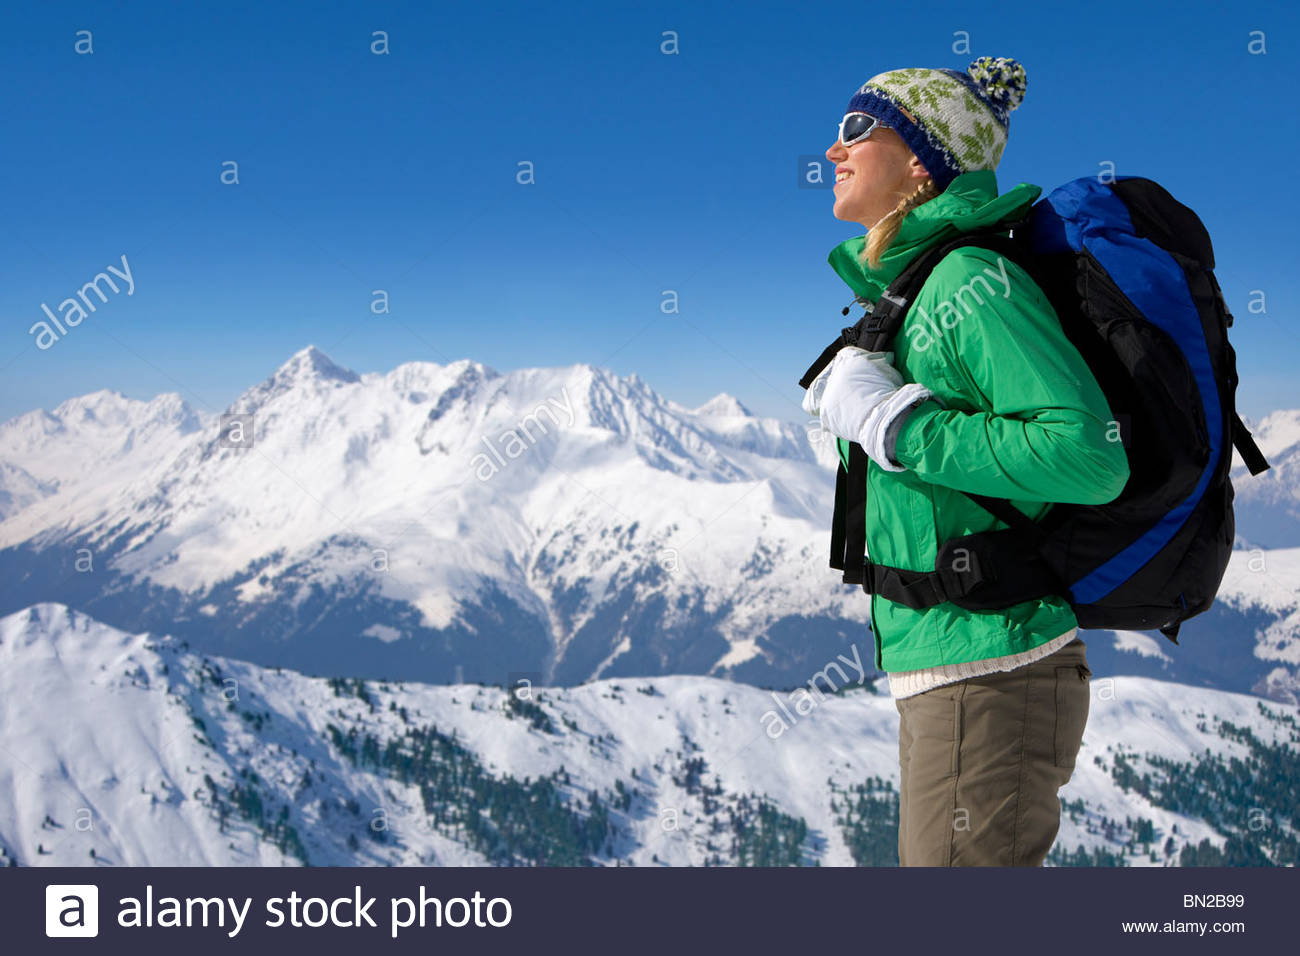 Woman with backpack on snowy mountain - Stock Image